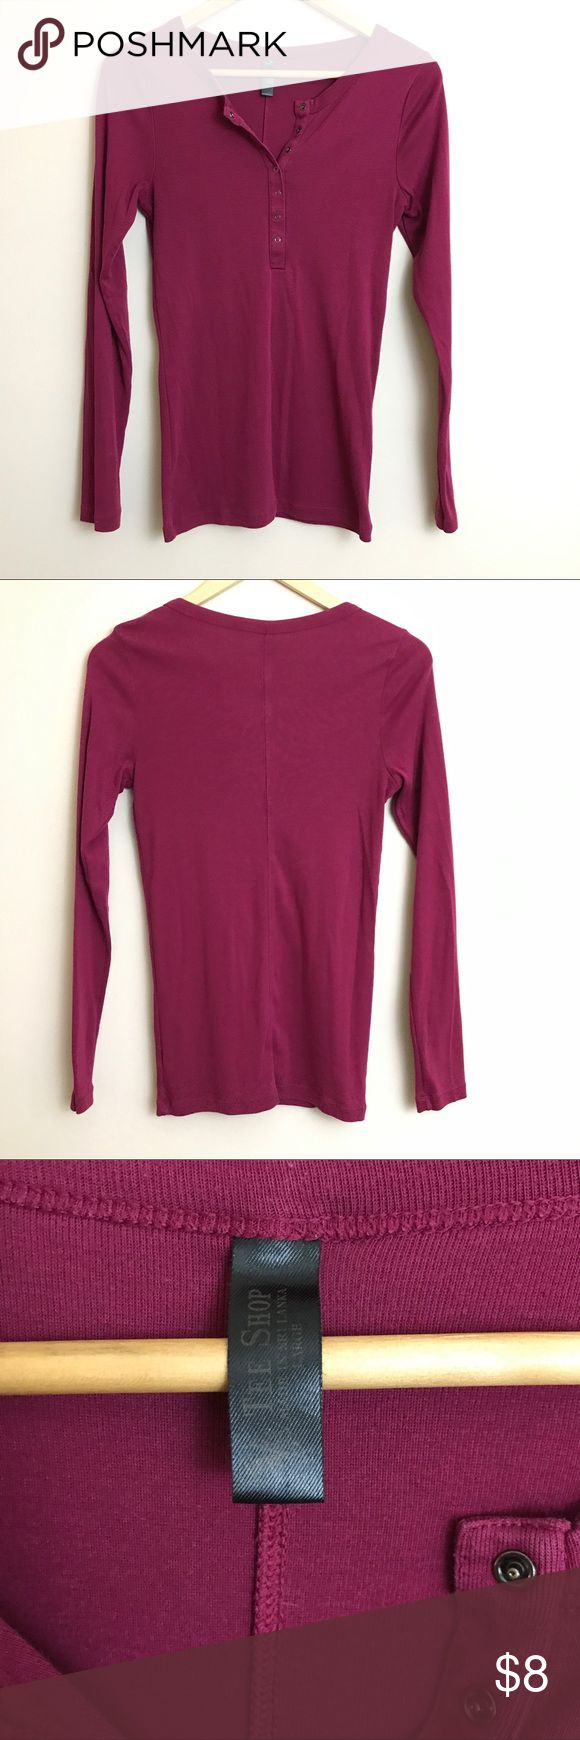 VS Tee Shop Long Sleeve Henley In good condition, soft and stretchy. Some pilling under arms but could be shaved off easily. Gunmetal tone snaps. Size Large but it fits like a medium. Victoria's Secret Tops Tees - Long Sleeve